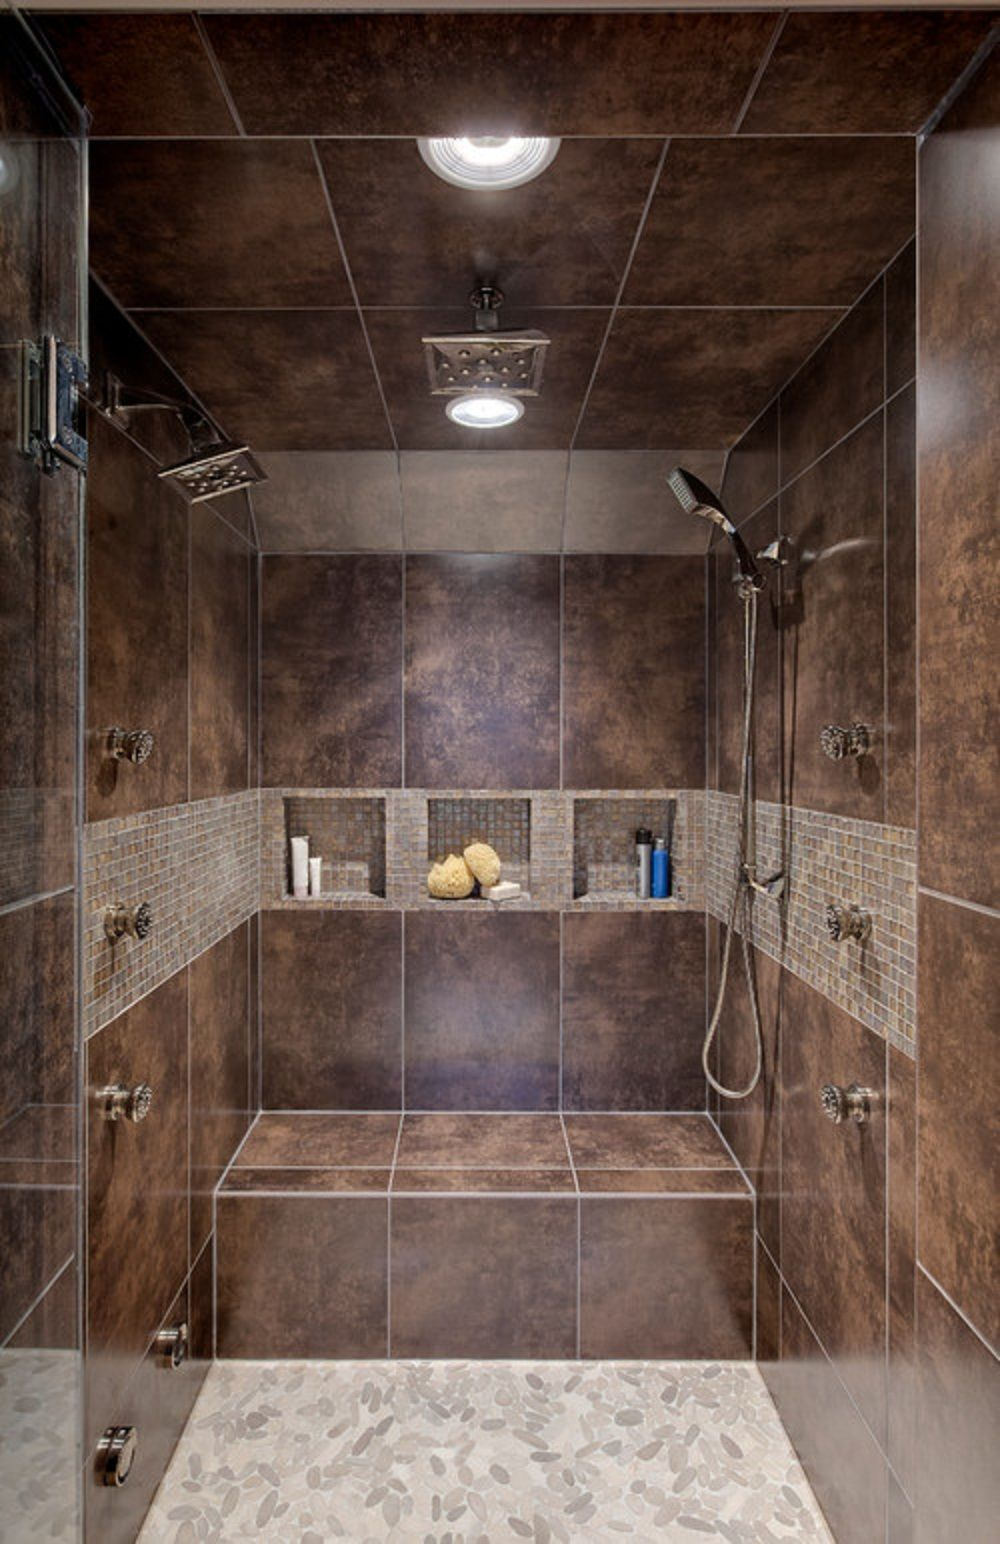 Shower Design With Bench And Pebble Floors Walk In Shower Bathroom Remodeling Design With Marble Tile Bathroom Shower Design Bathrooms Remodel Shower Remodel